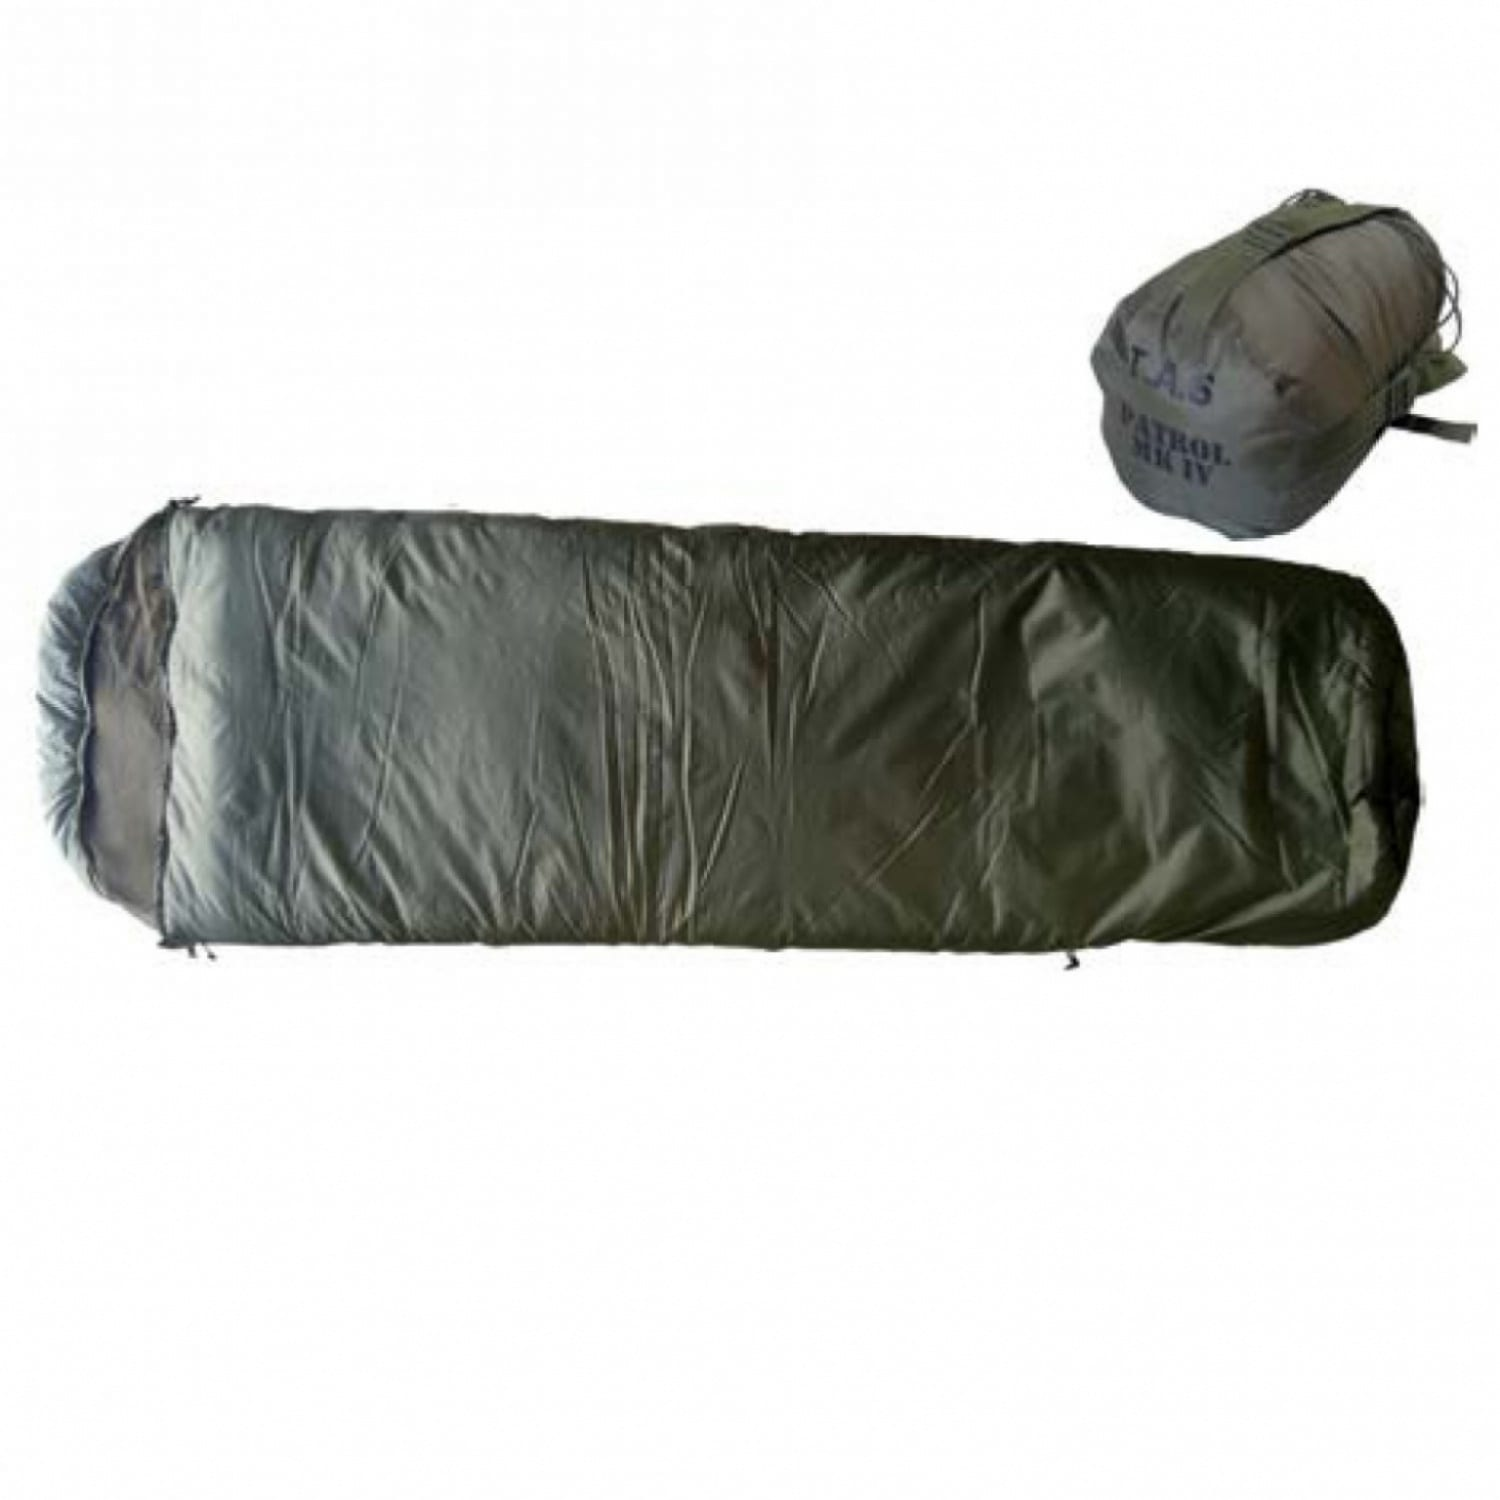 Tas Patrol Mk V Sleeping Bag 12 Combat Kit Australia